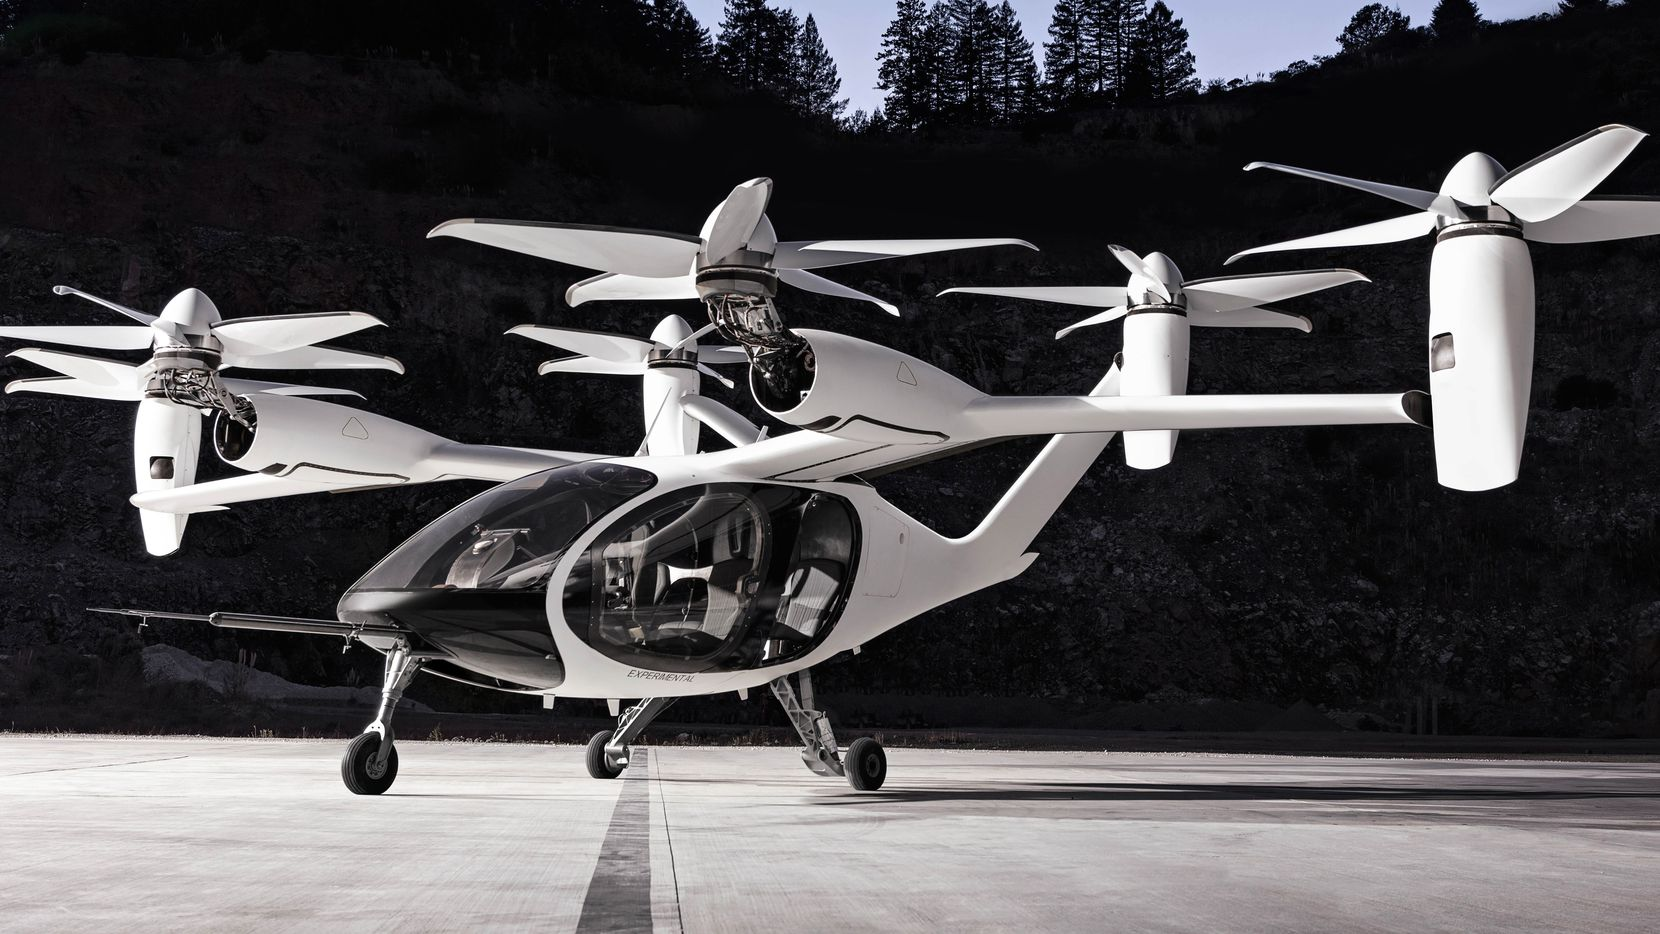 Joby Aviation is one of a handful of companies making electric air taxis. Toyota announced a $394 million investment in the California company.